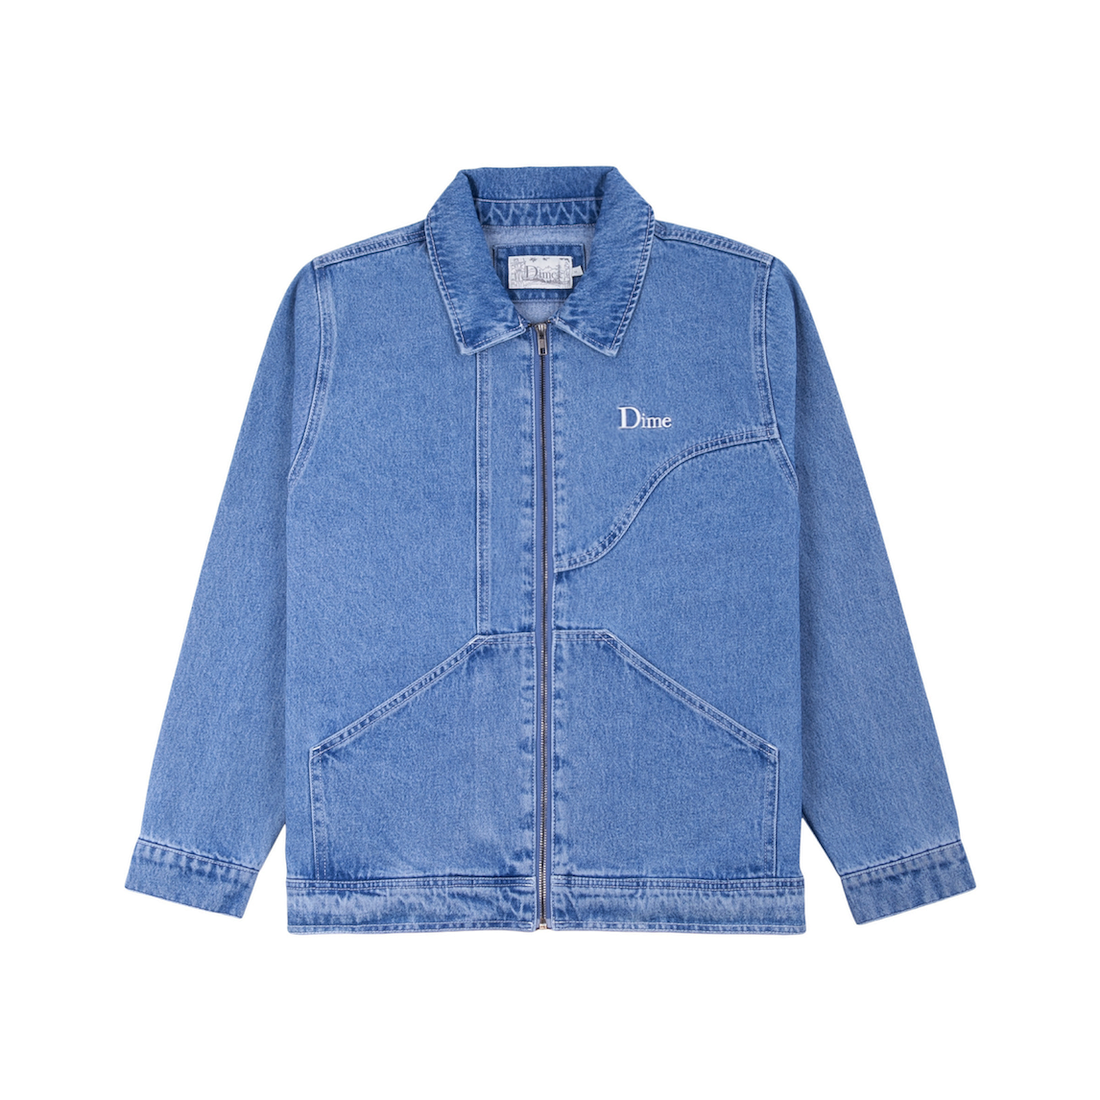 【Dime】Denim Chore Jacket - Light Wash